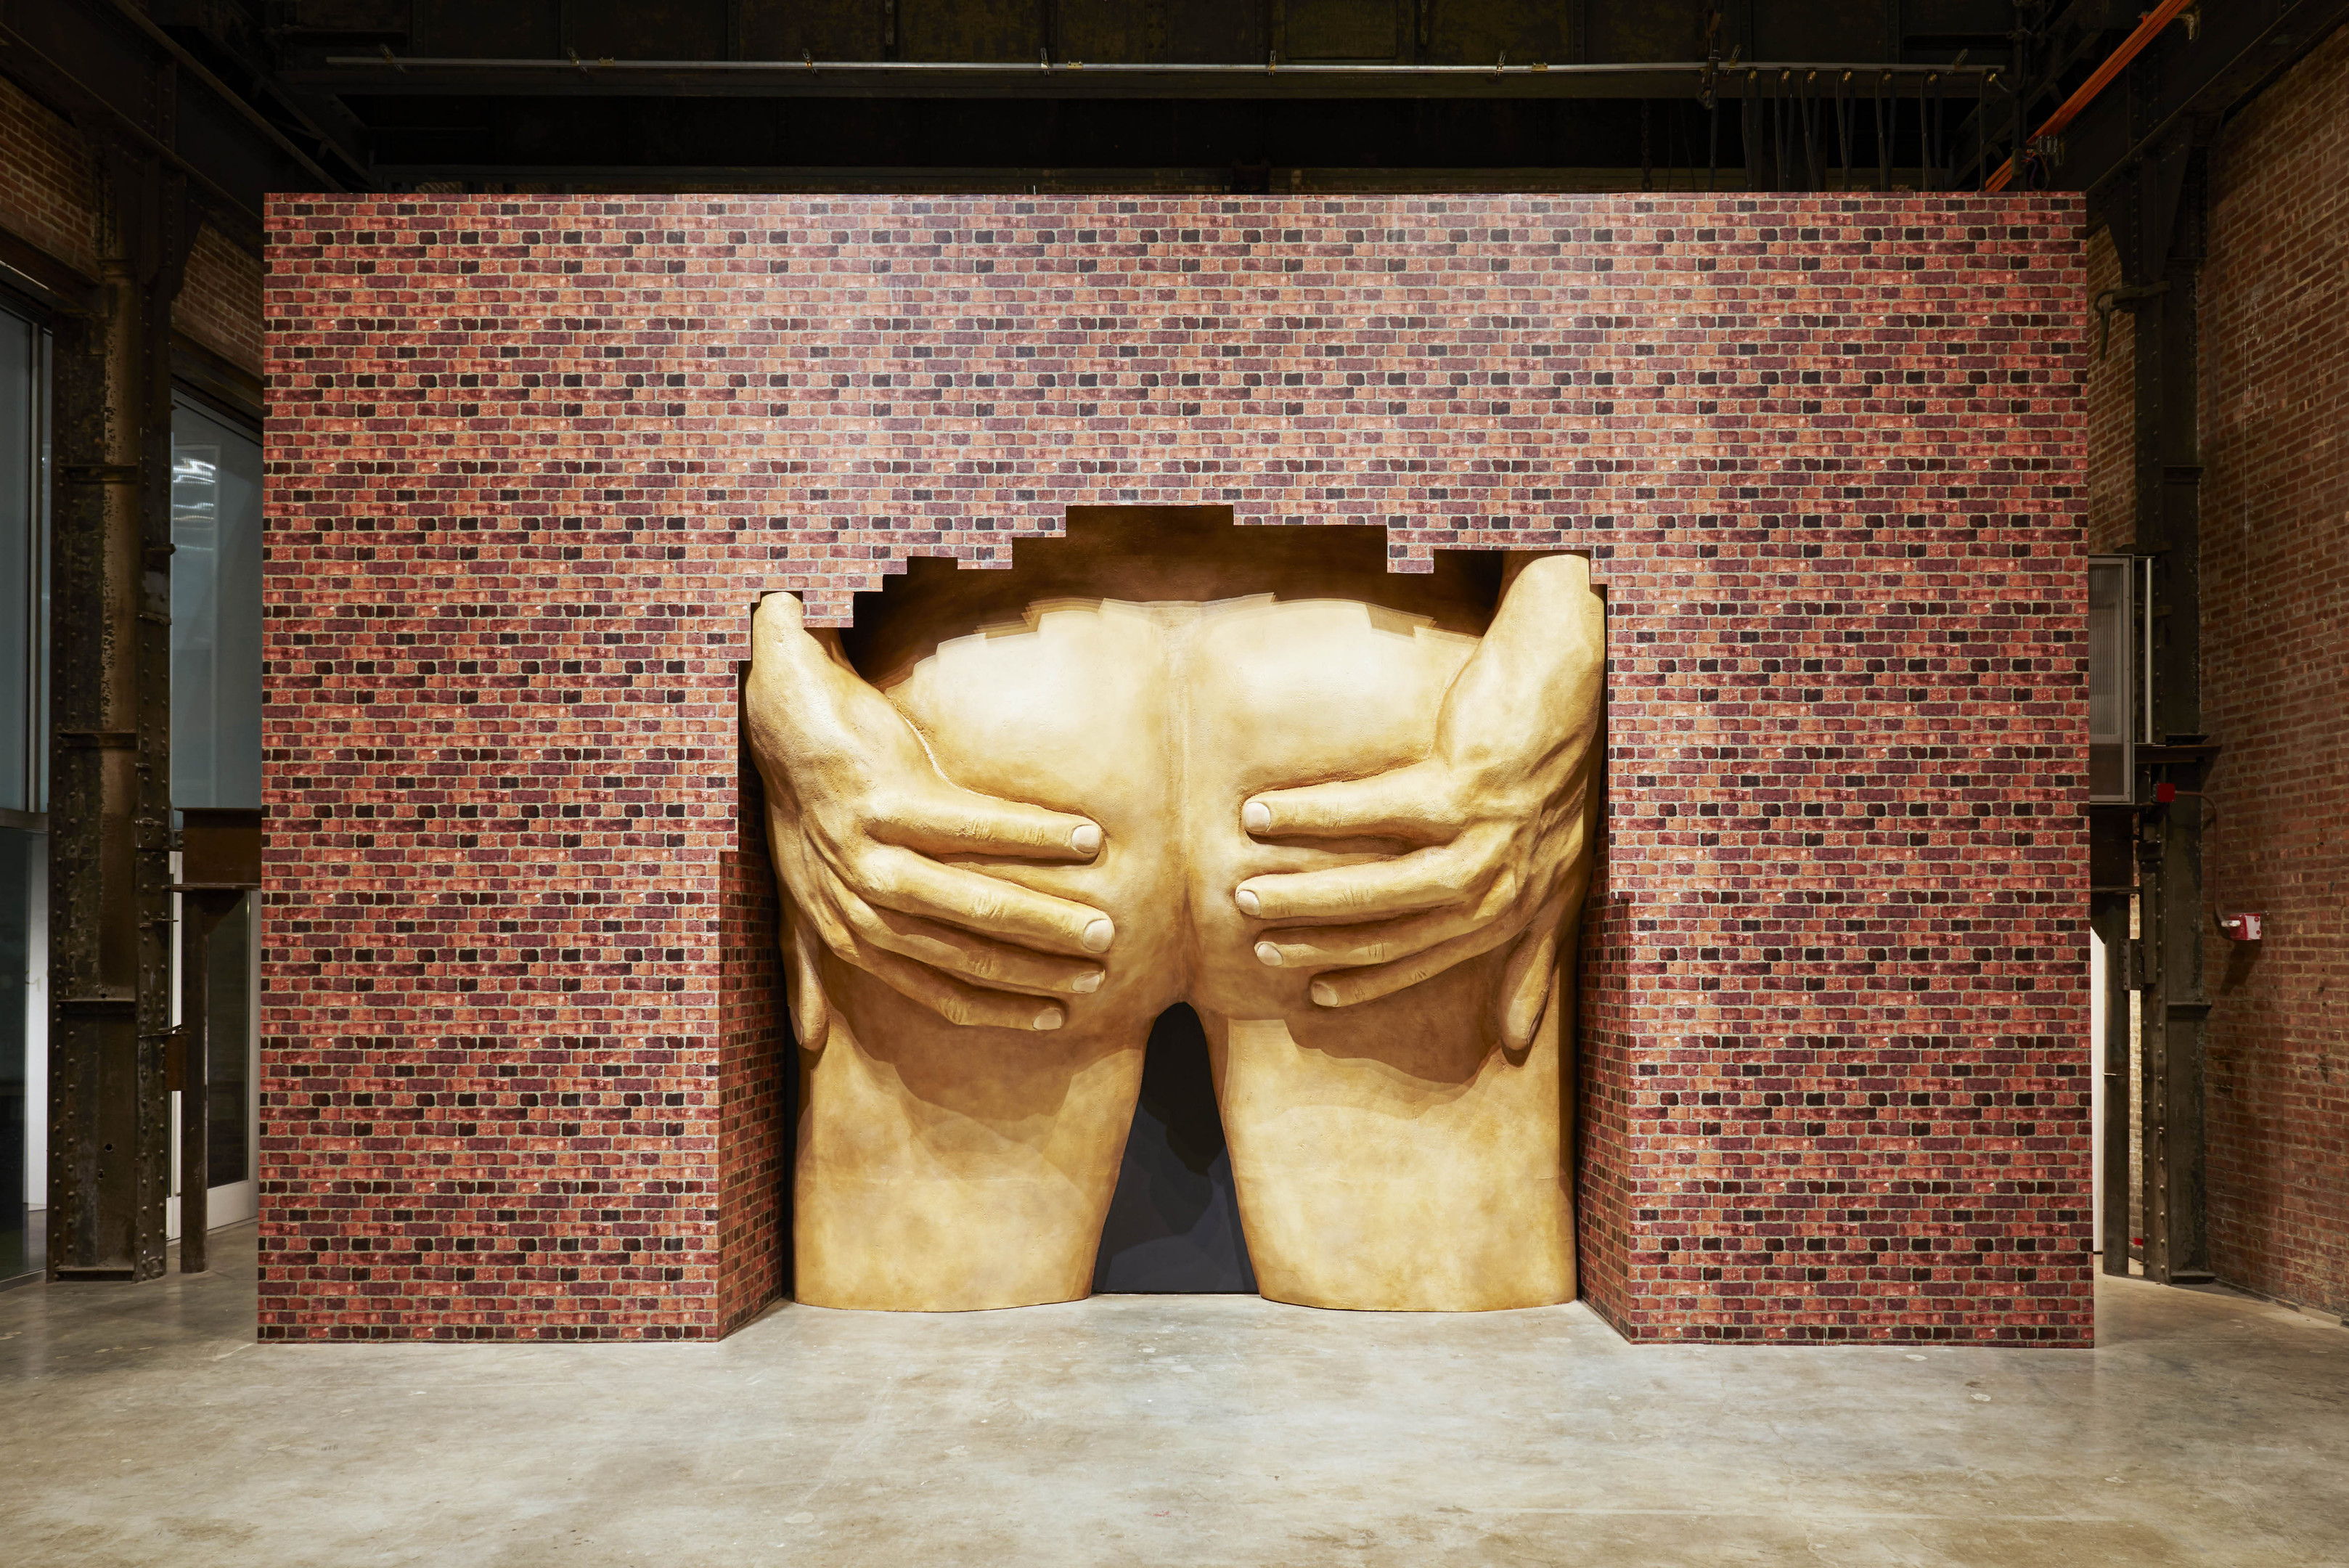 Anthea Hamilton's piece featuring a large set of buttocks apparently bursting out from behind a wall.